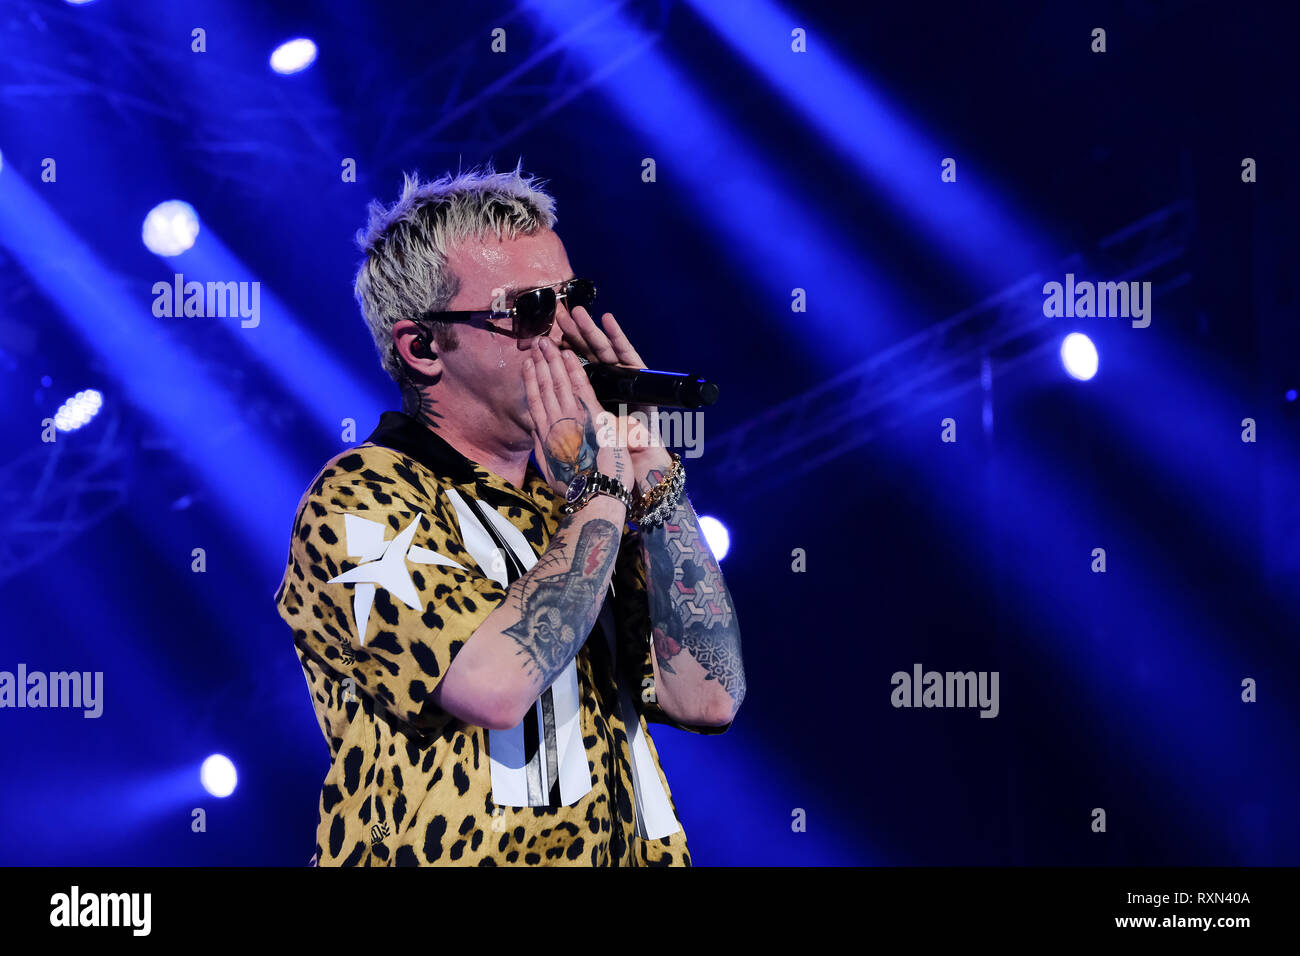 """Turin, Italy. 09th Mar, 2019. The Italian rapper Maurizio Pisciottu known as Salmo, on the stage of the Pala Alpitour during his concert tour """"Play List"""". Credit: Bruno Brizzi/Pacific Press/Alamy Live News Stock Photo"""